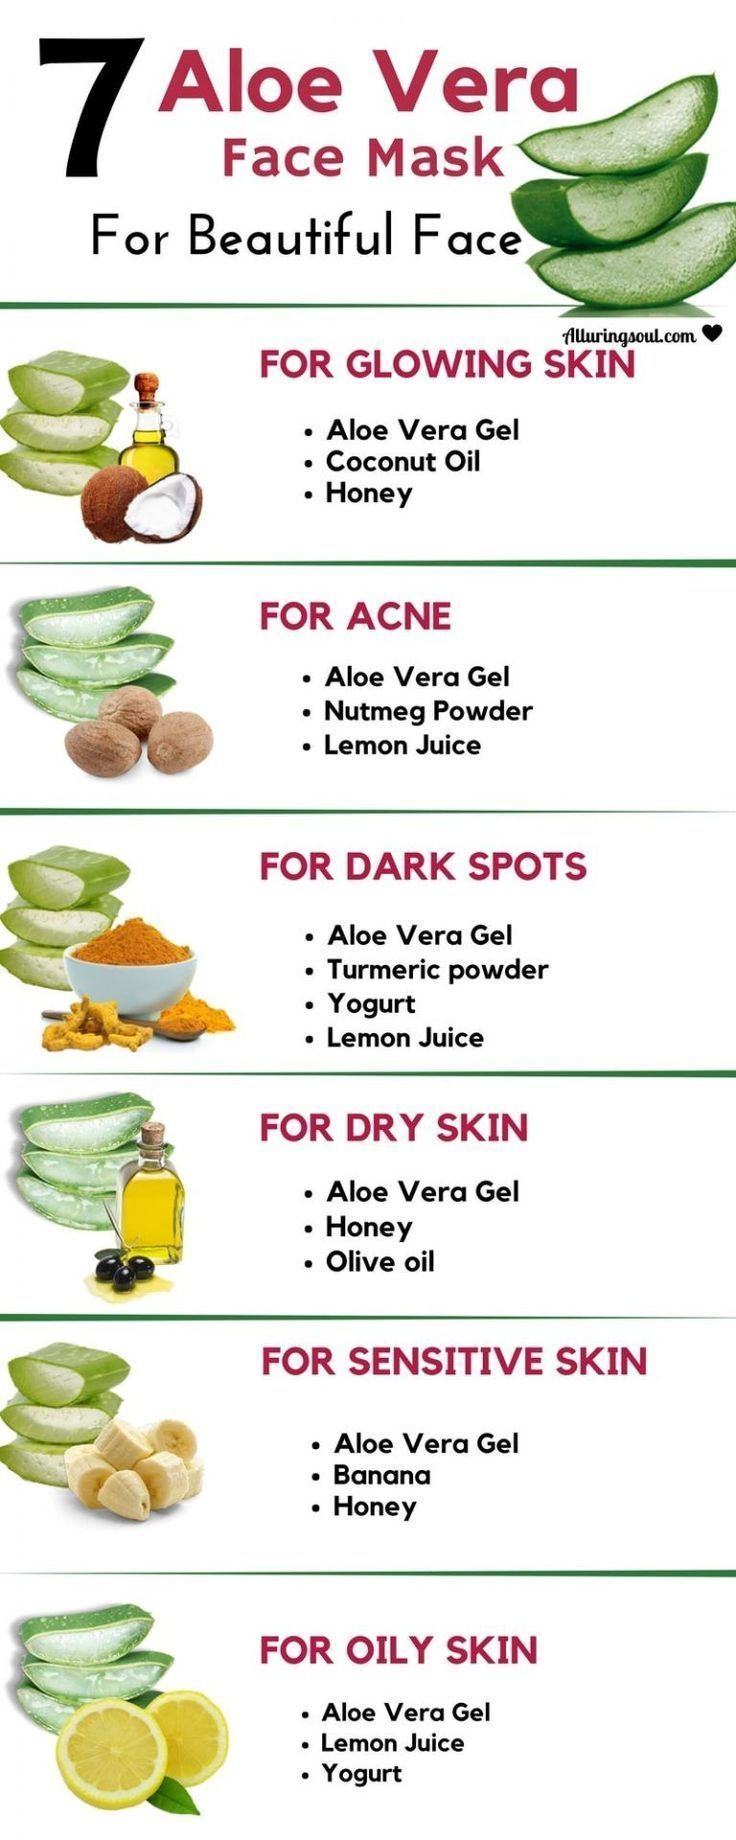 7 Aloe Vera face mask for radiant and beautiful skin - FITNESS WORKOUTS -  7 Aloe Vera face mask for...